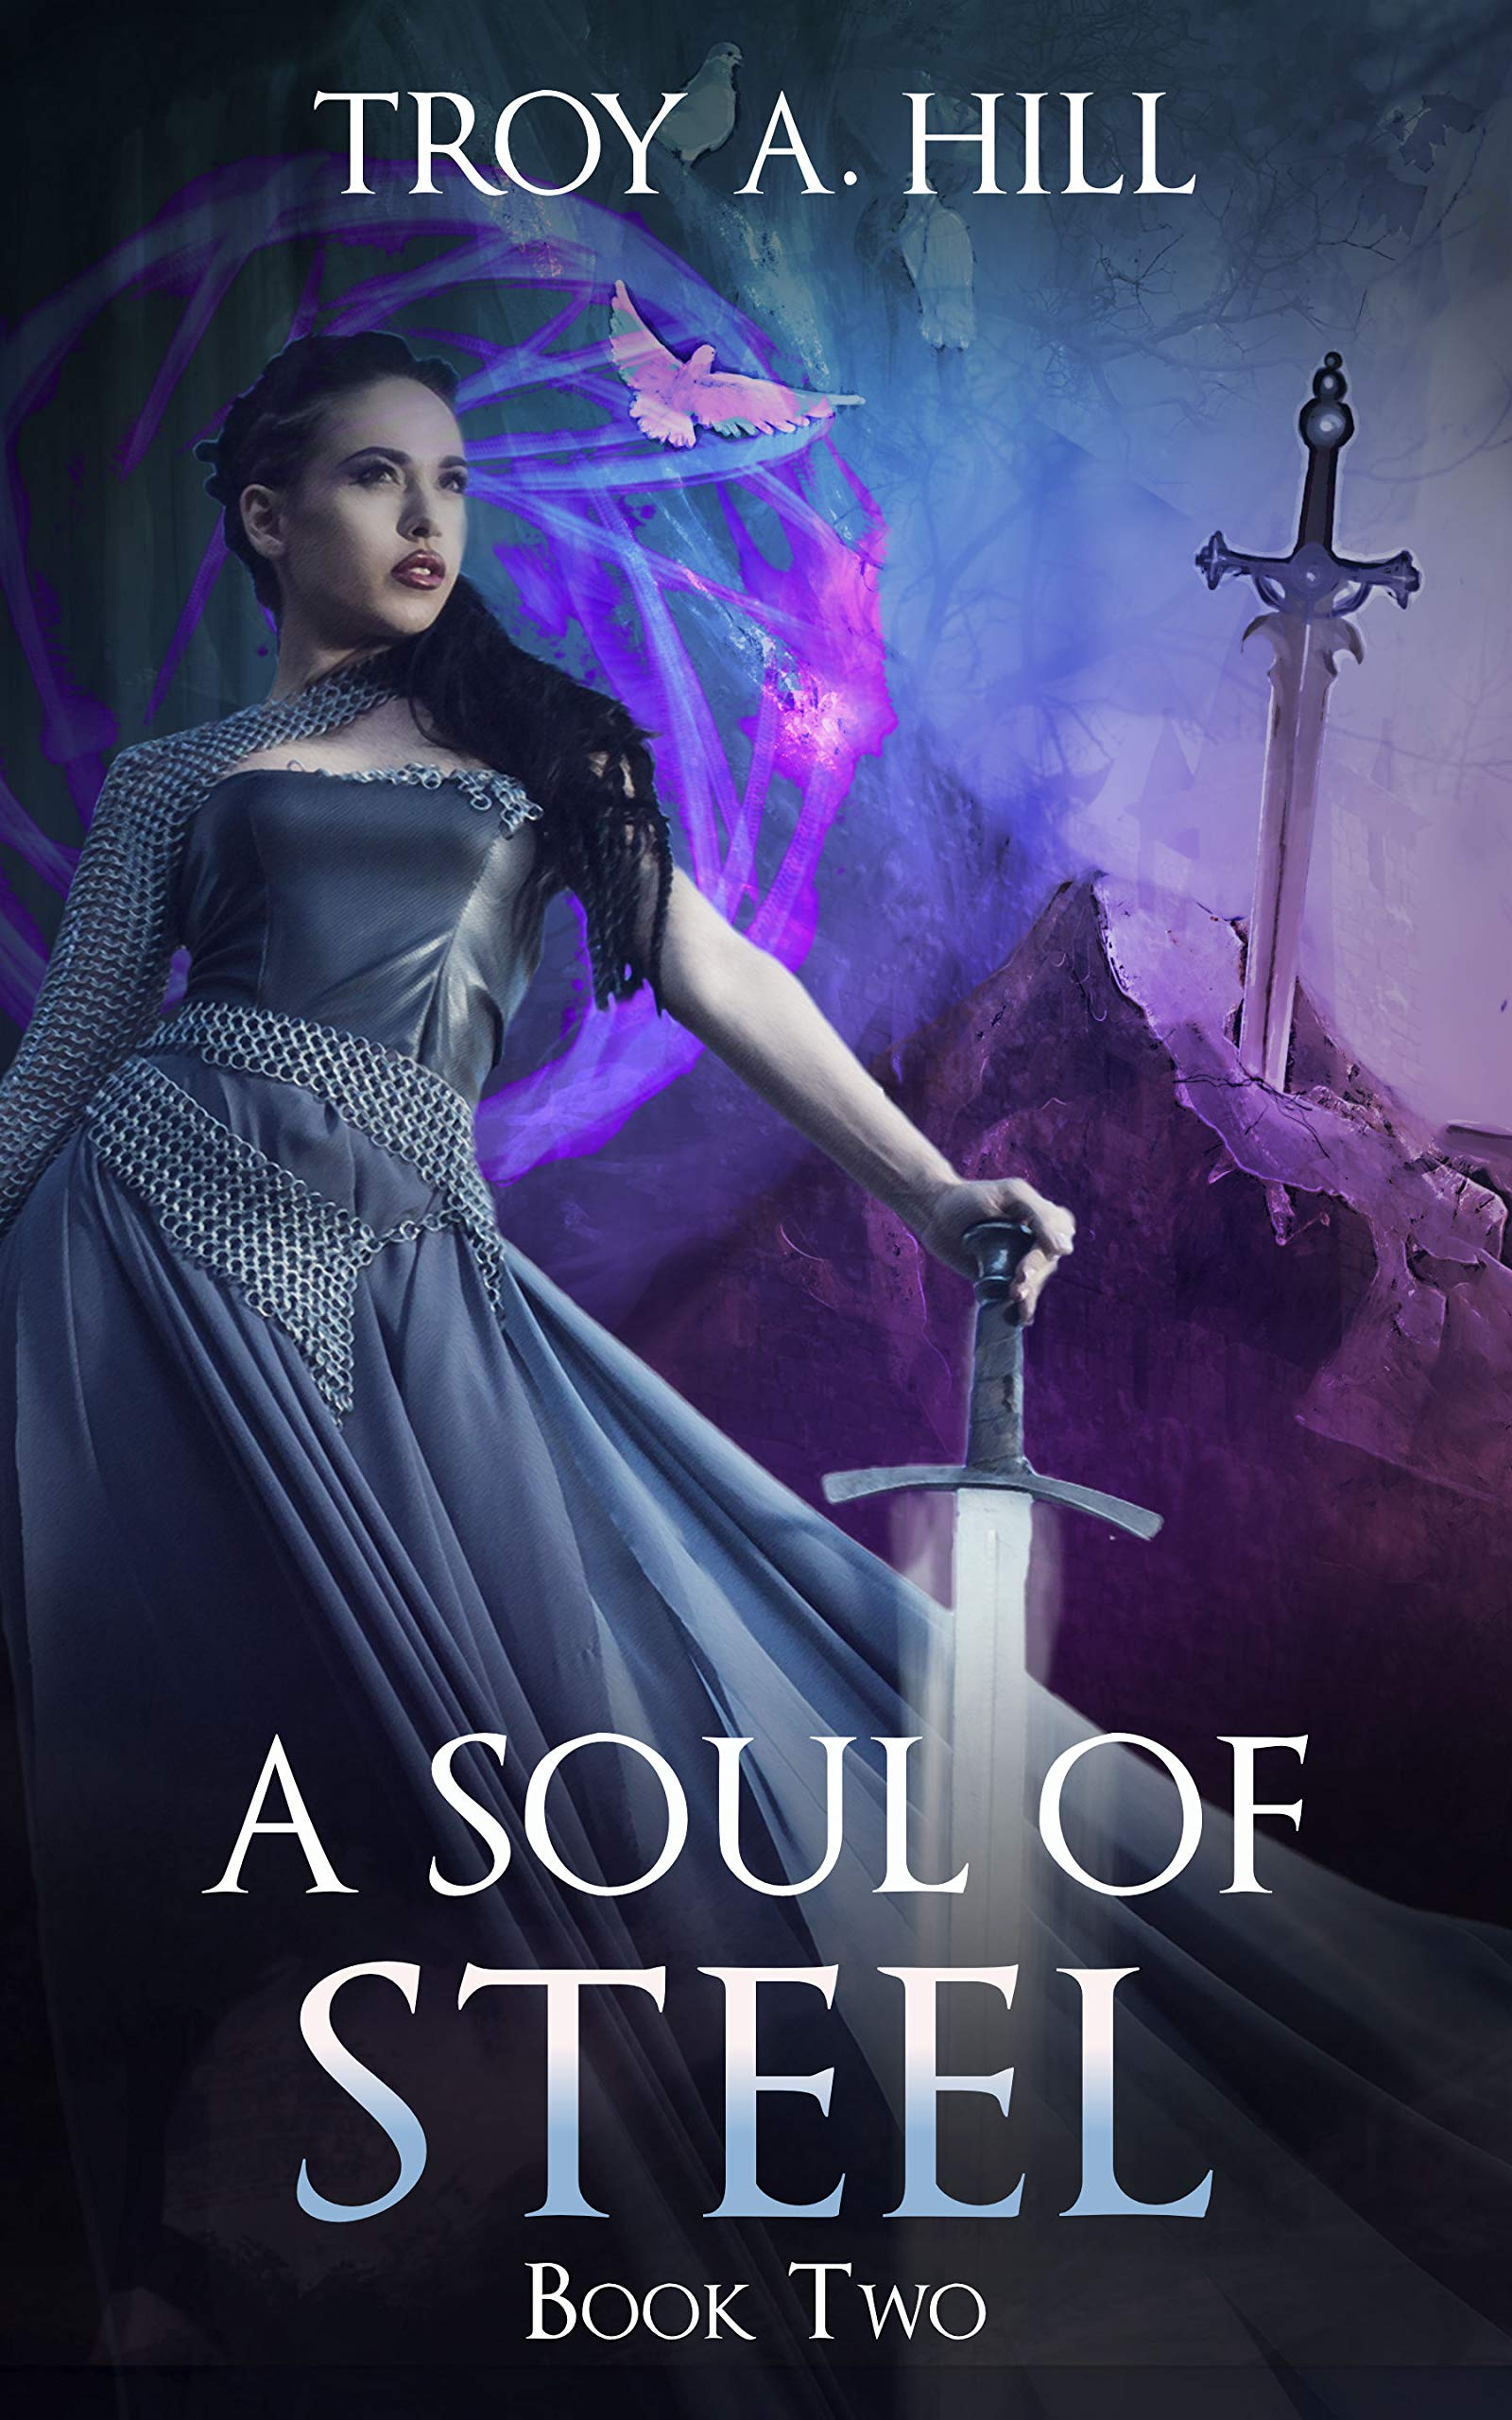 A Soul of Steel: Medieval Urban Fantasy in Post Arthurian Britain (A Cup of Blood Book 2) (English Edition)